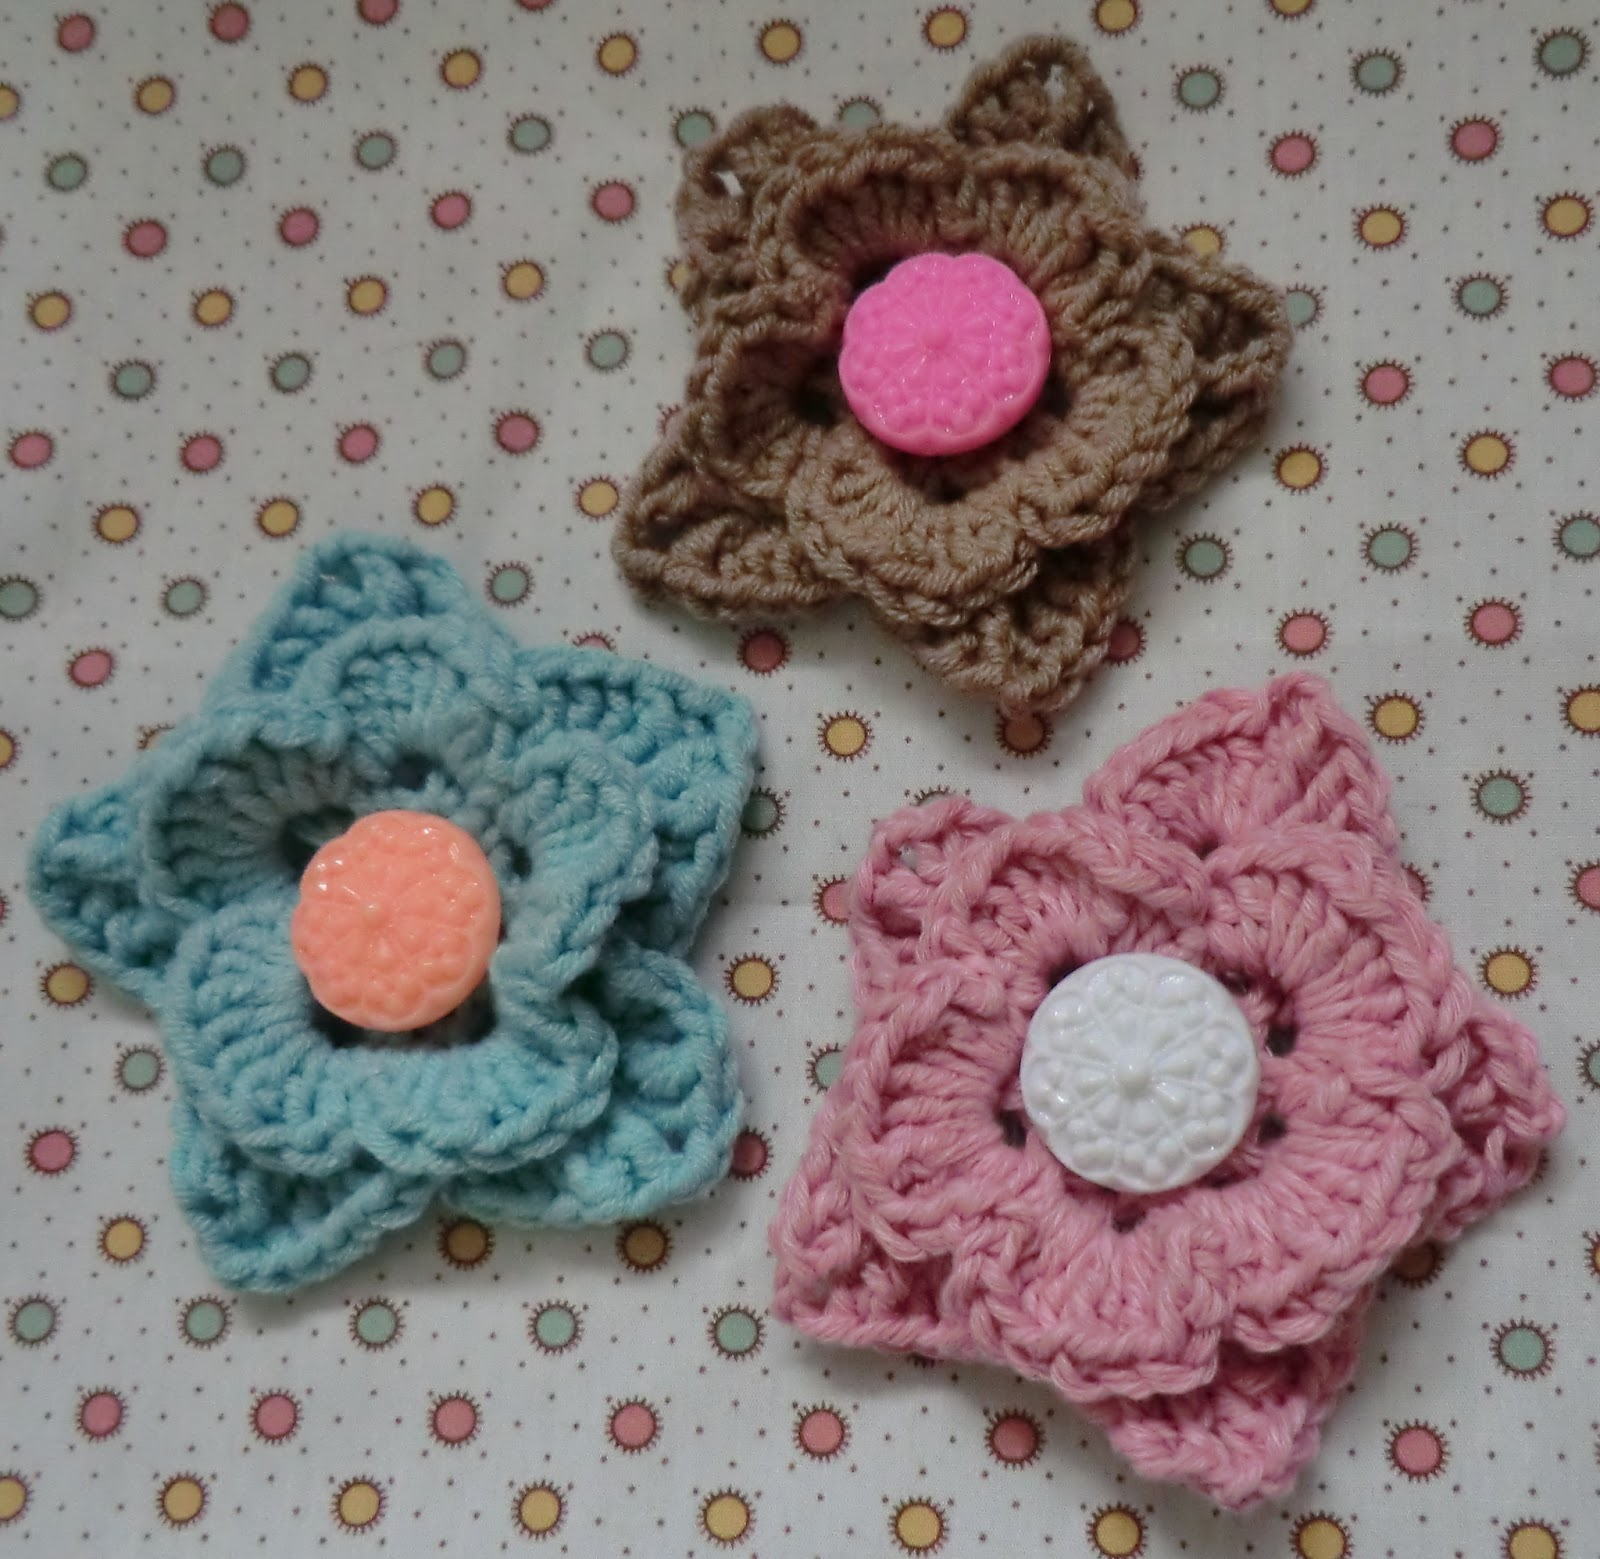 Amigurumi Flower Pattern Free : Amigurumi Barmy: Mollie makes vintage button flower motif